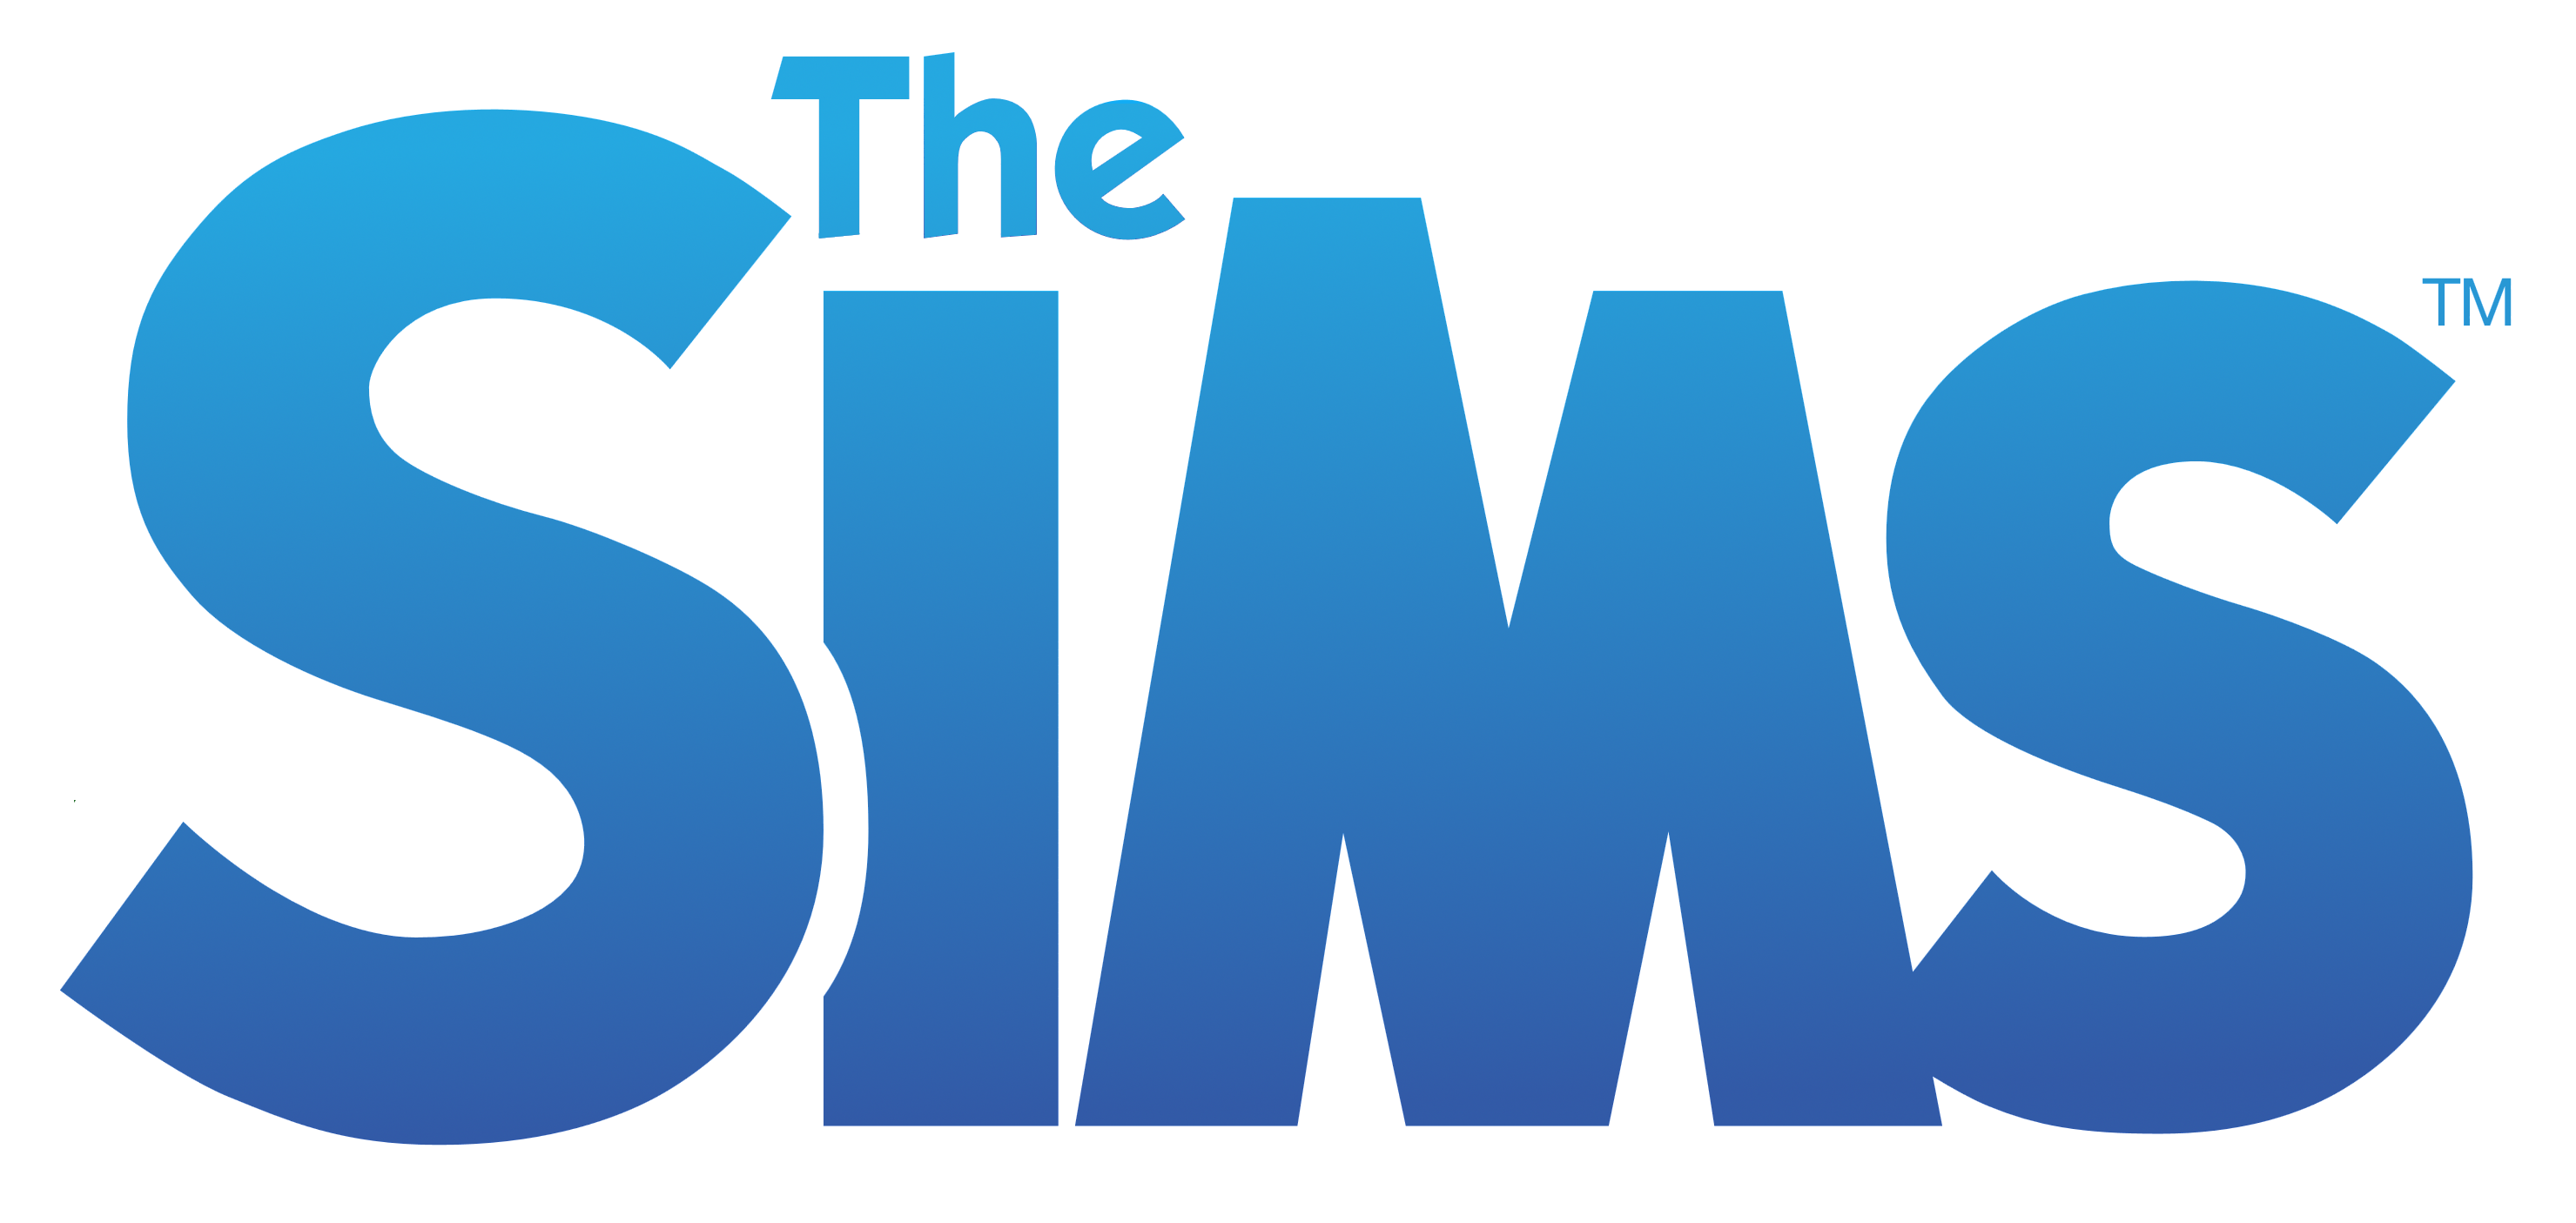 The Sims Logo Png Image Logos Sims Png Images